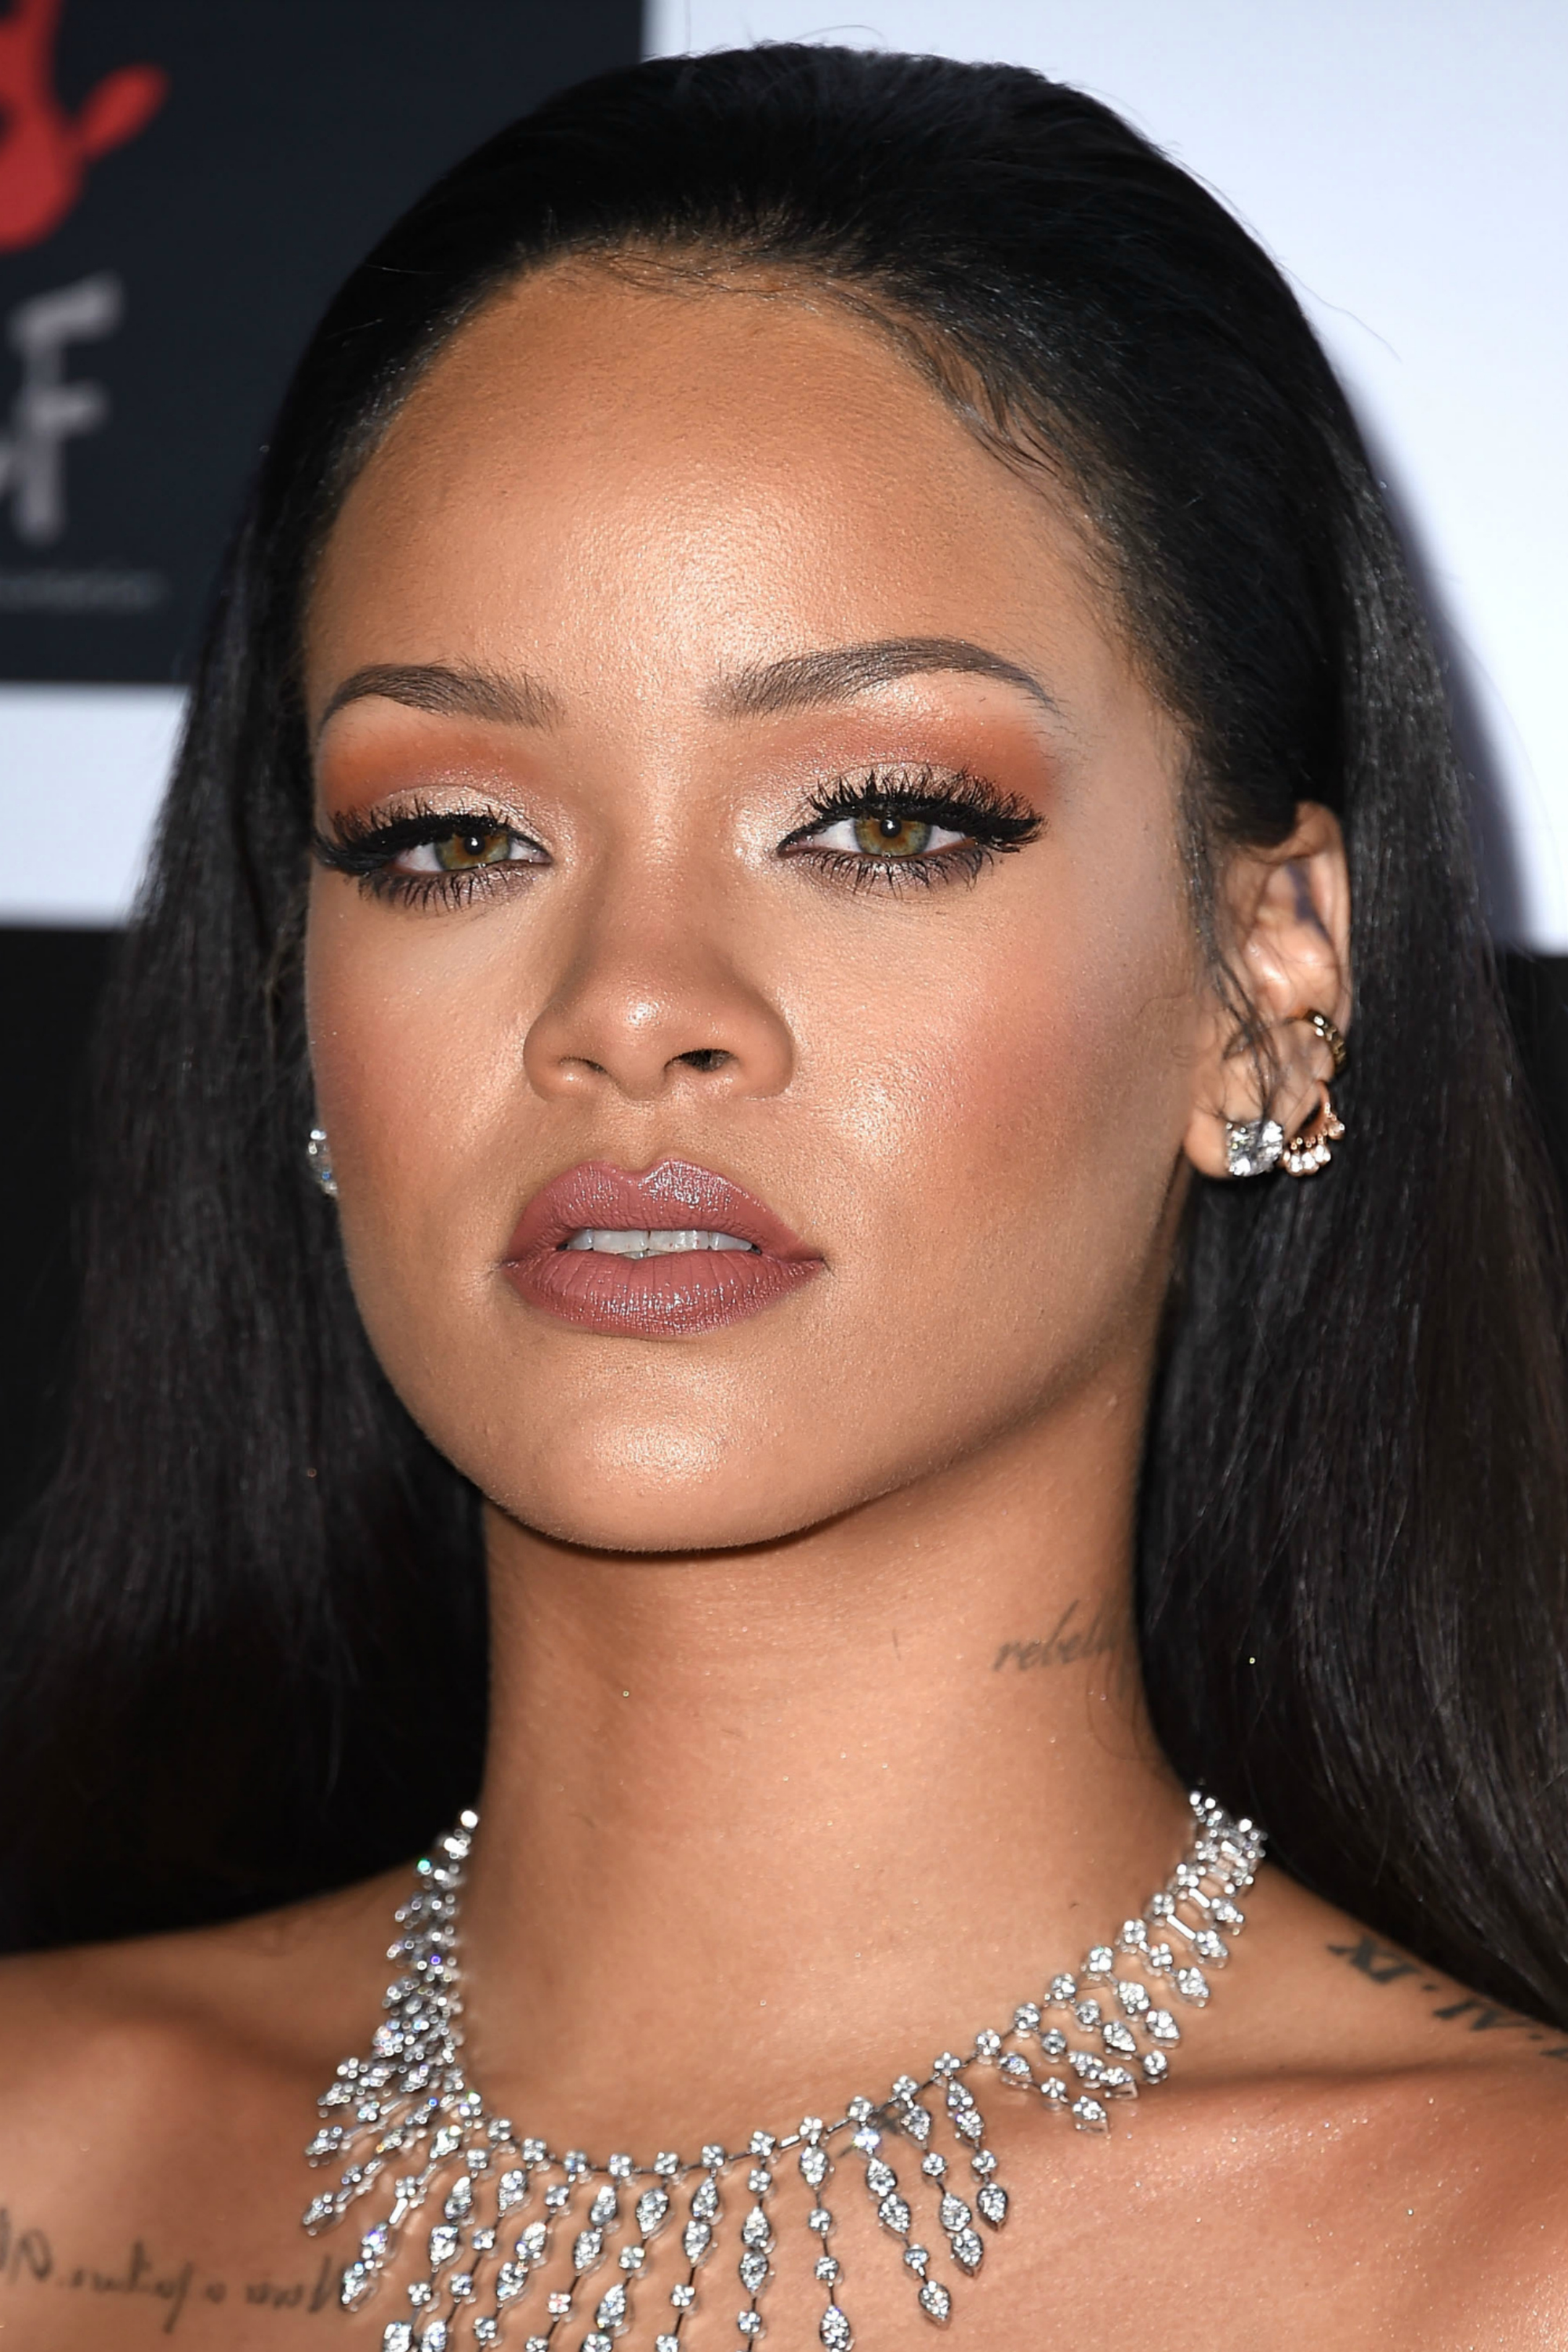 14 Best Eyeshadow Colors for Brown, Blue, Green, and Hazel Eyes ...